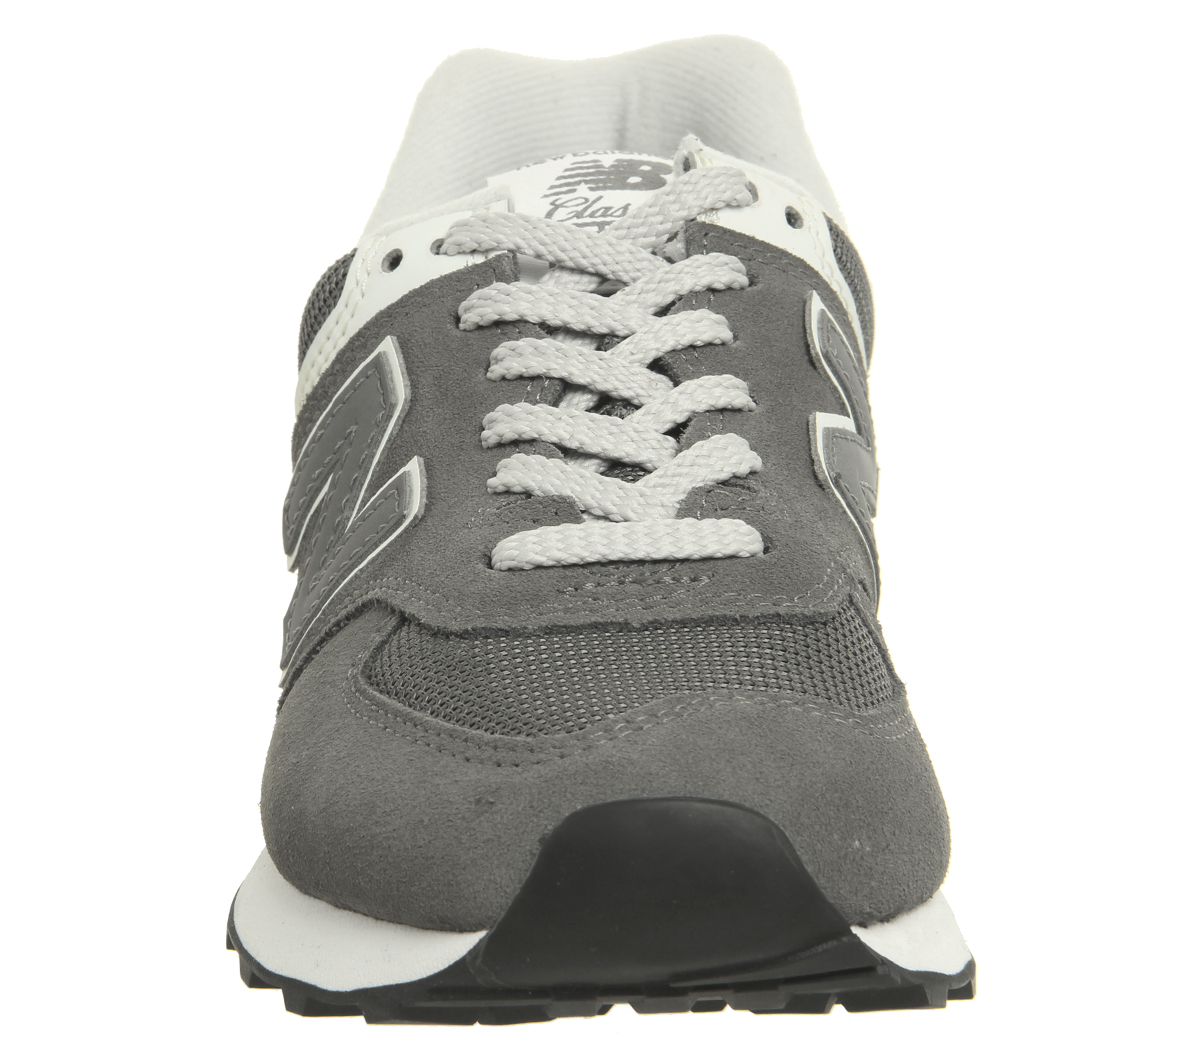 Womens New Balance 574 Trainers Castle Rock Trainers Shoes